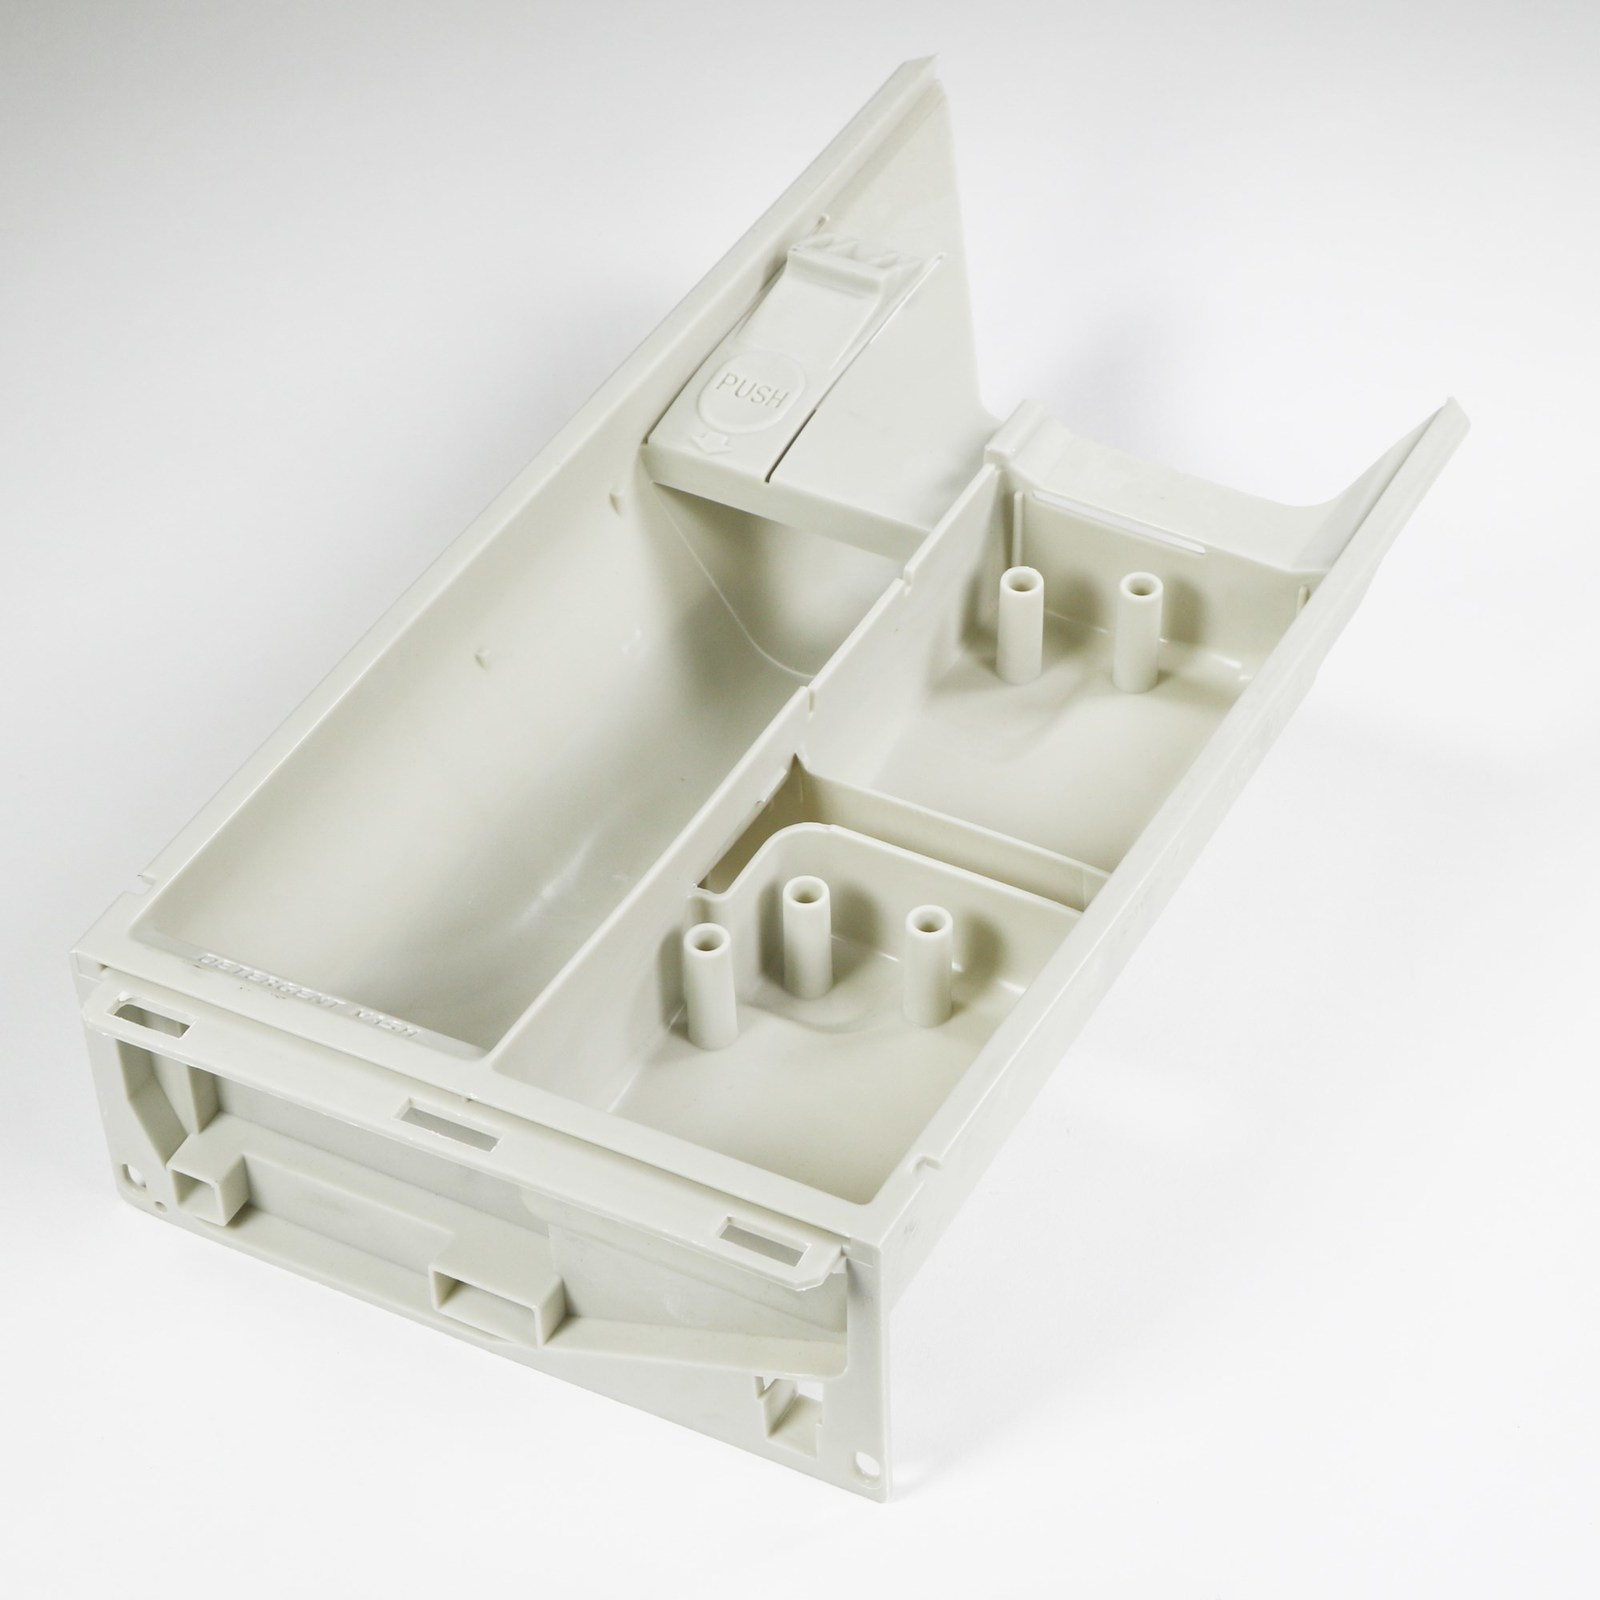 Primary image for 134370000 ELECTROLUX FRIGIDAIRE Washer dispenser drawer